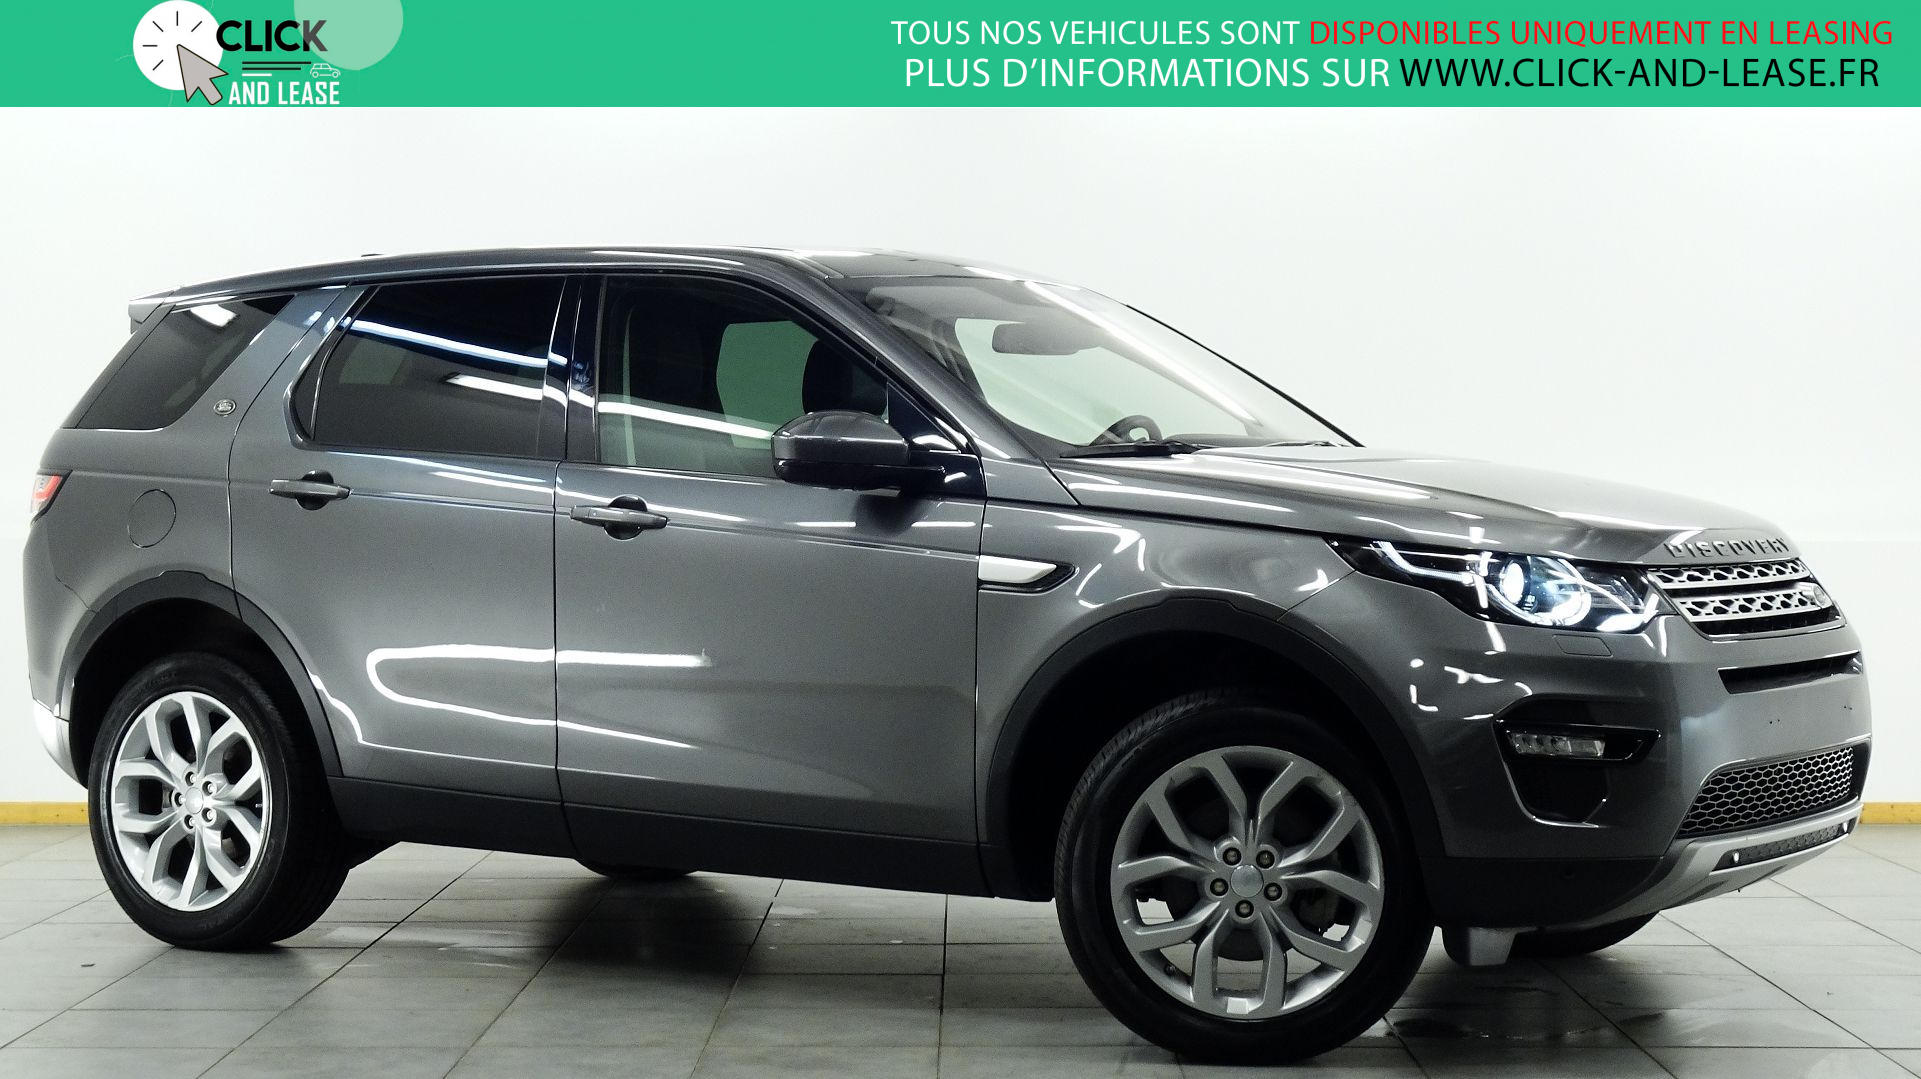 LAND-ROVER DISCOVERY SPORT 2.0 TD4 180CH HSE AWD BVA MARK IV en leasing chez Click and Lease